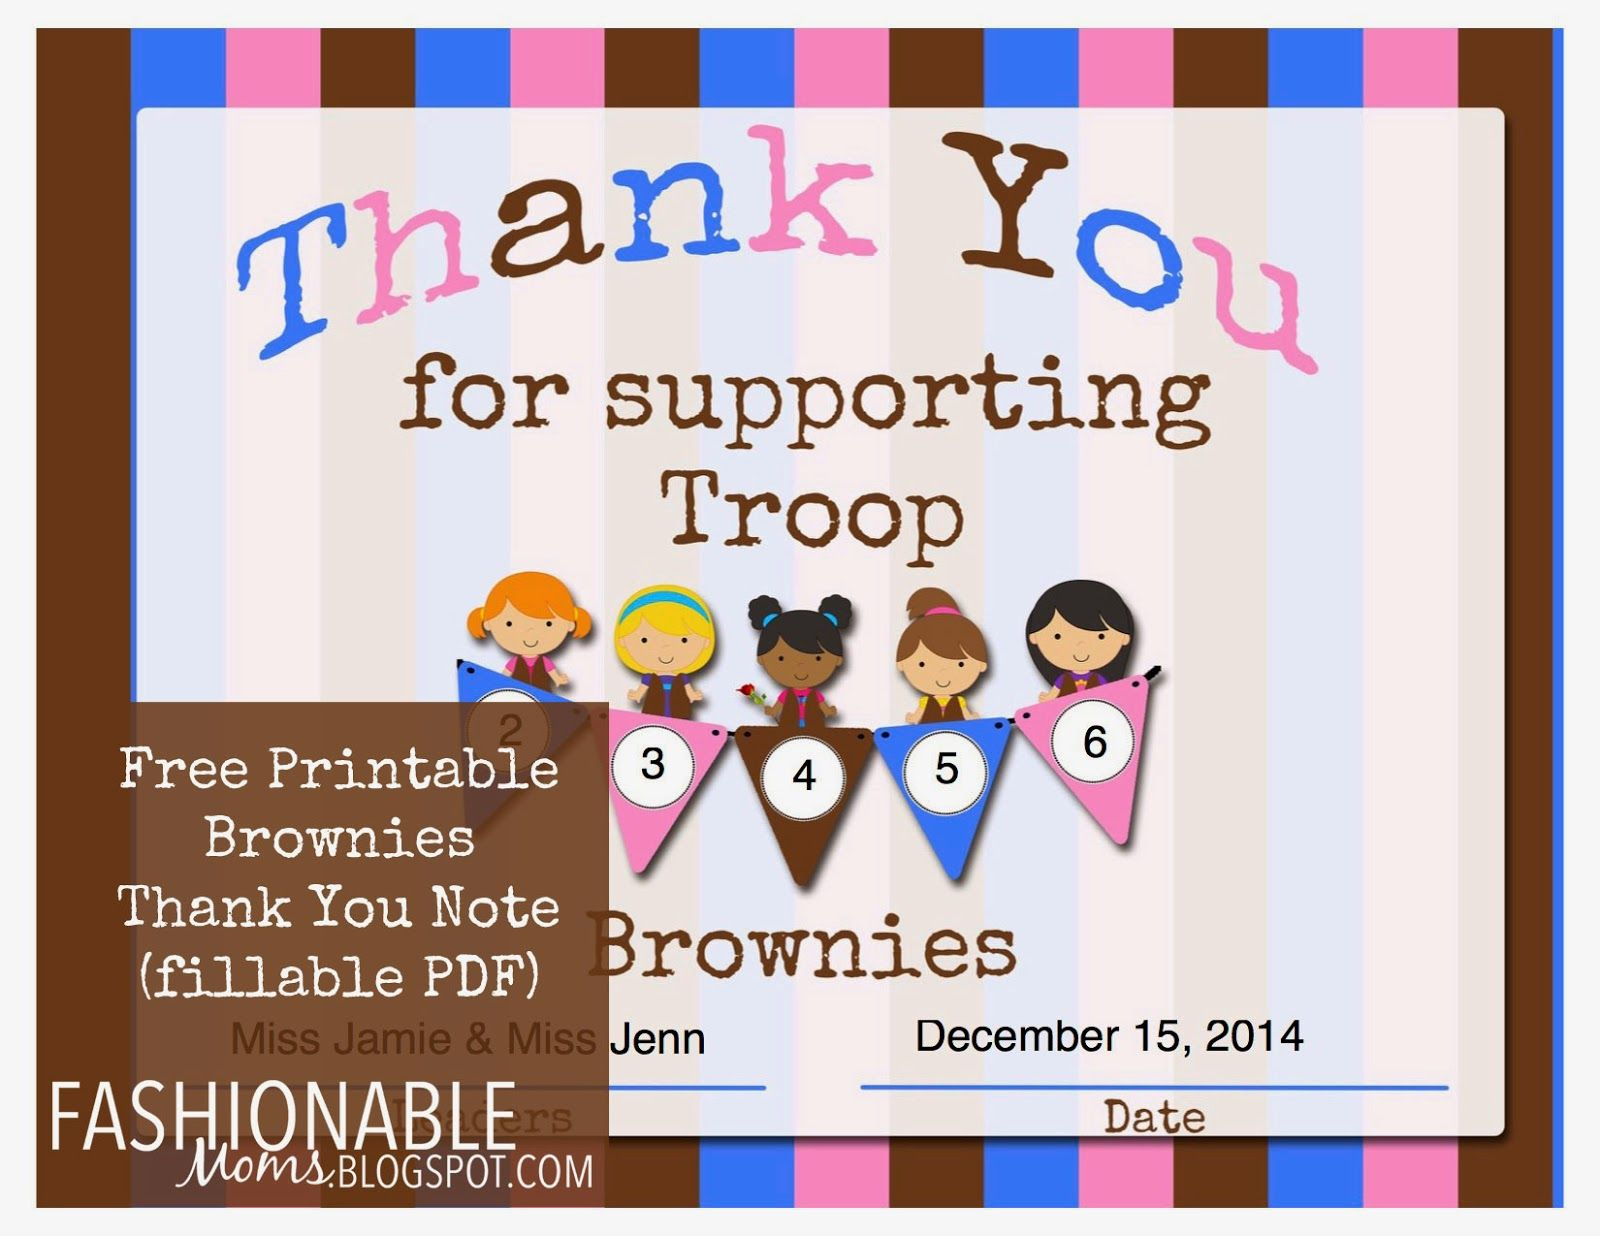 Fashionable Moms Free Printable Brownies Thank You Certificate